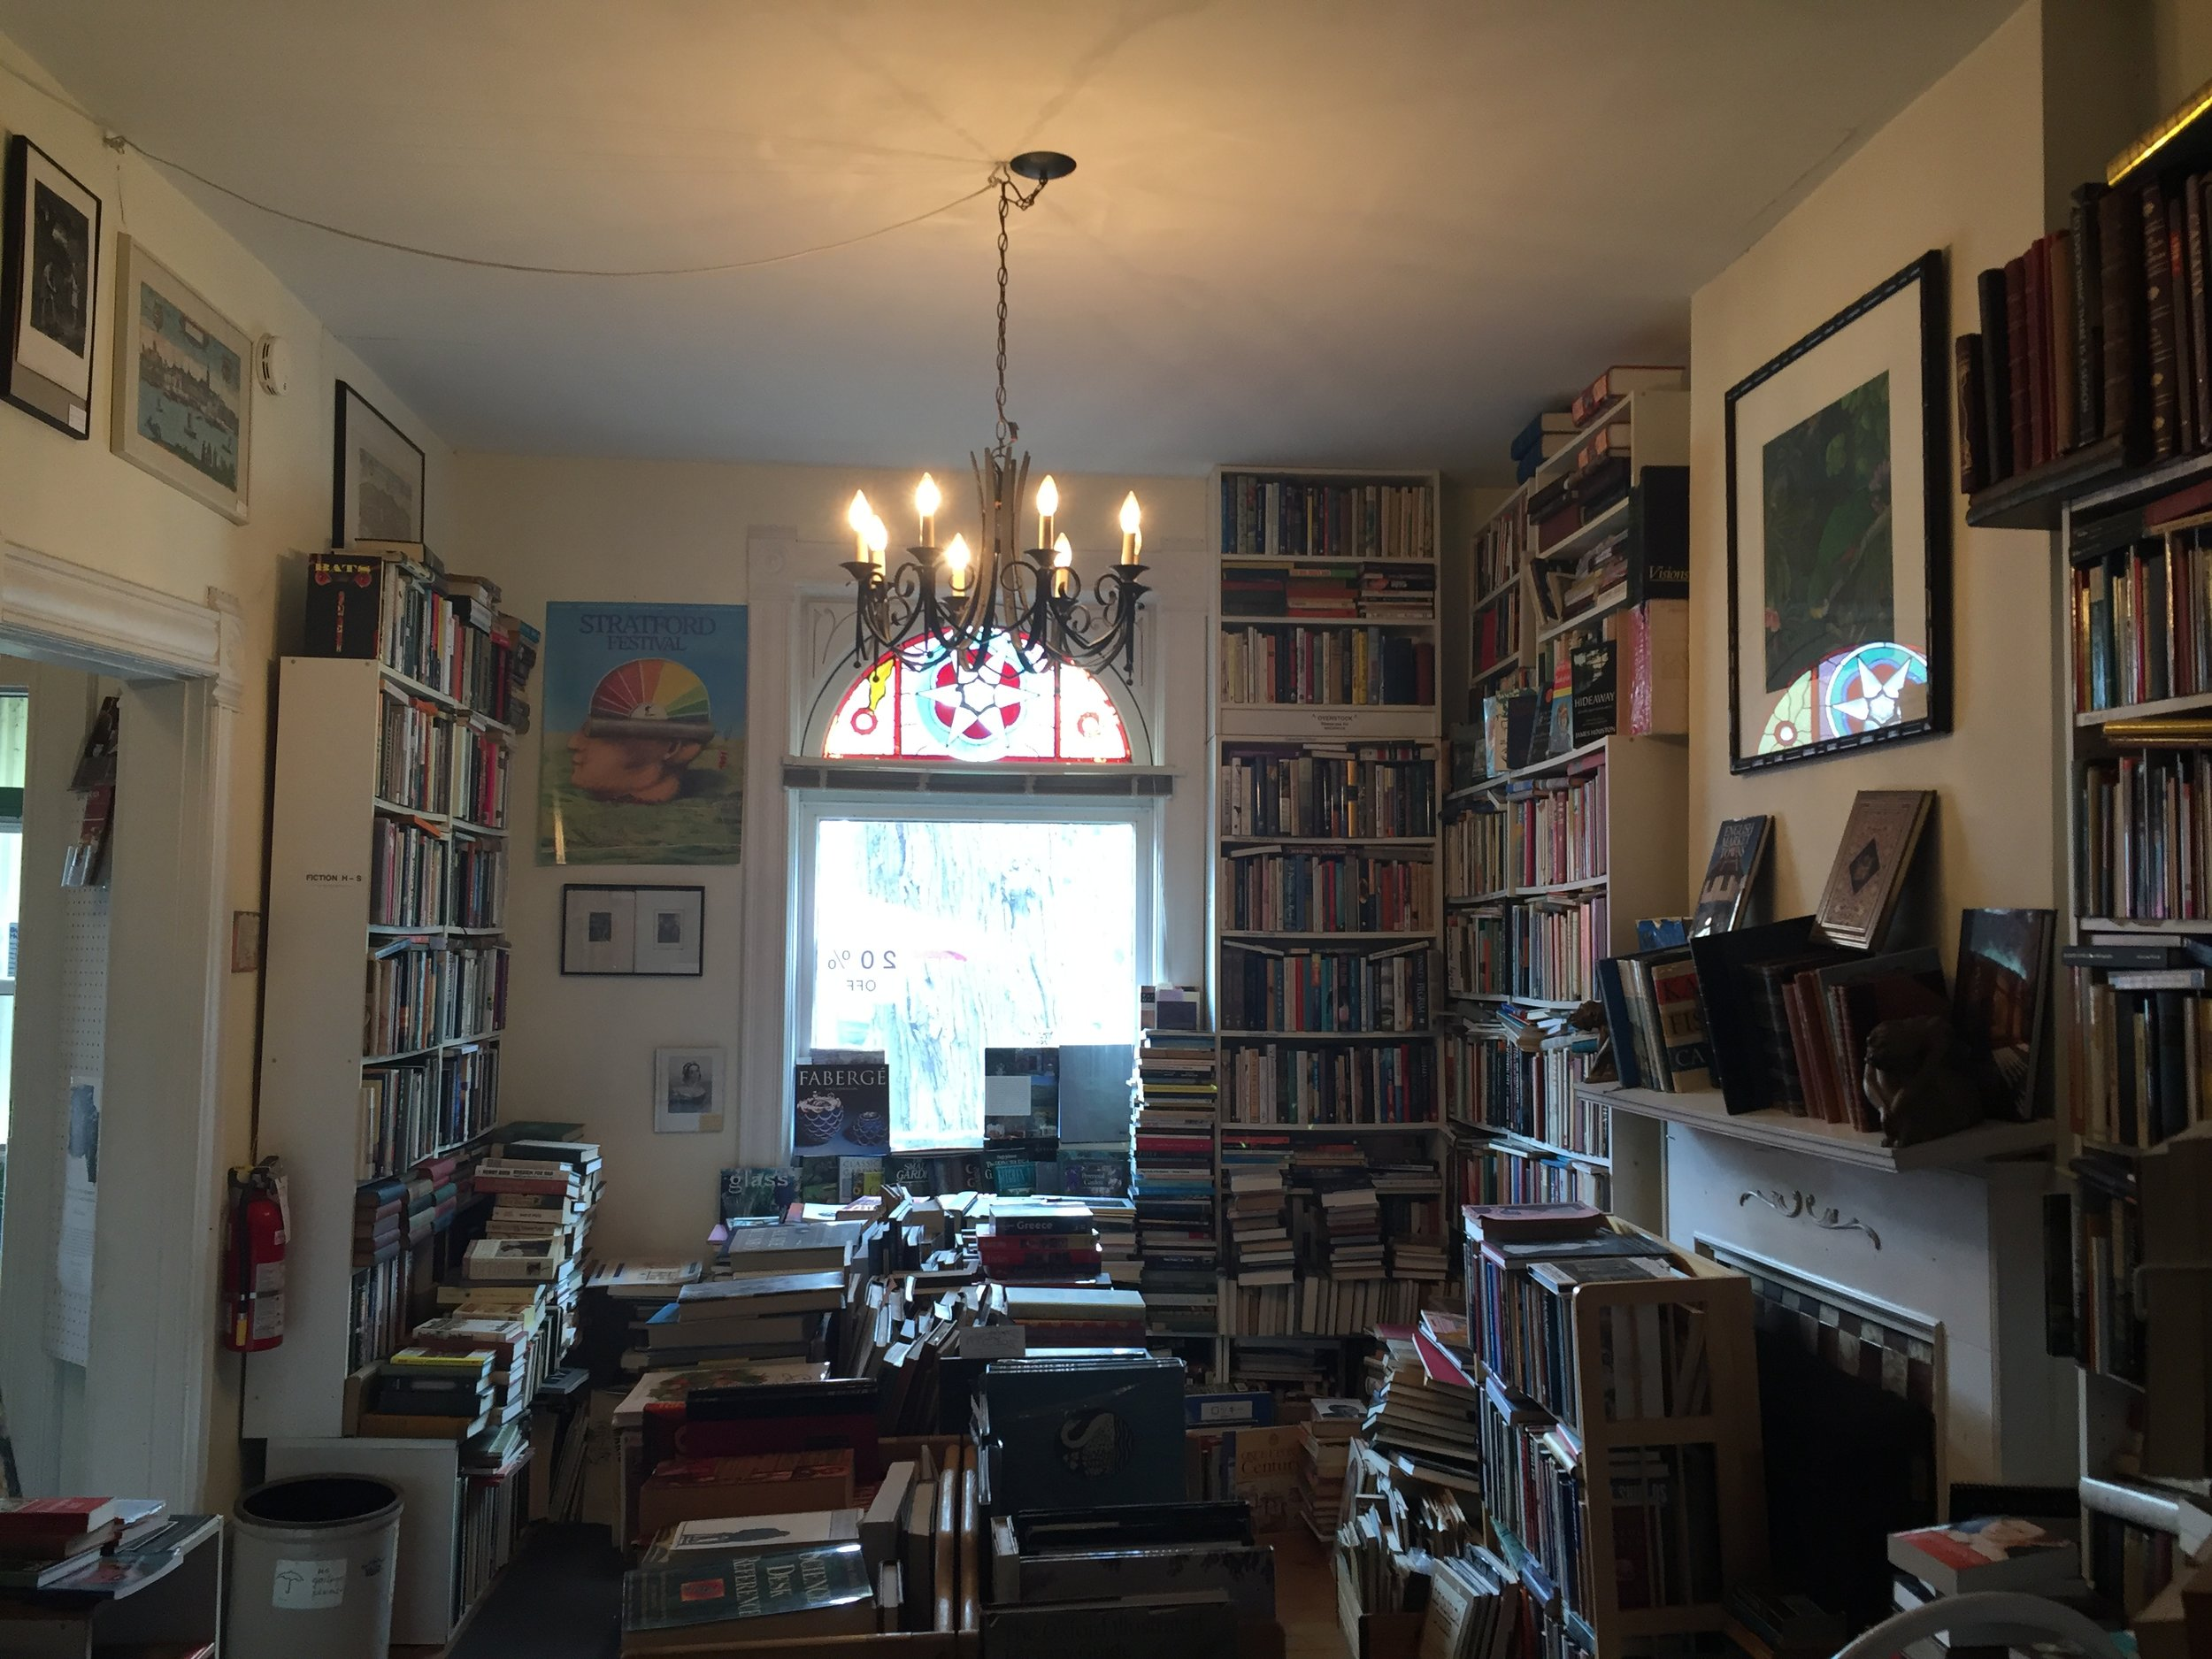 [image description: Inside the Book Stage shop. A view of the main room features floor to ceiling bookshelves, a large window, stained glass, a chandelier, and a fireplace mantle that's about to fall off because of how many books are placed on it.]